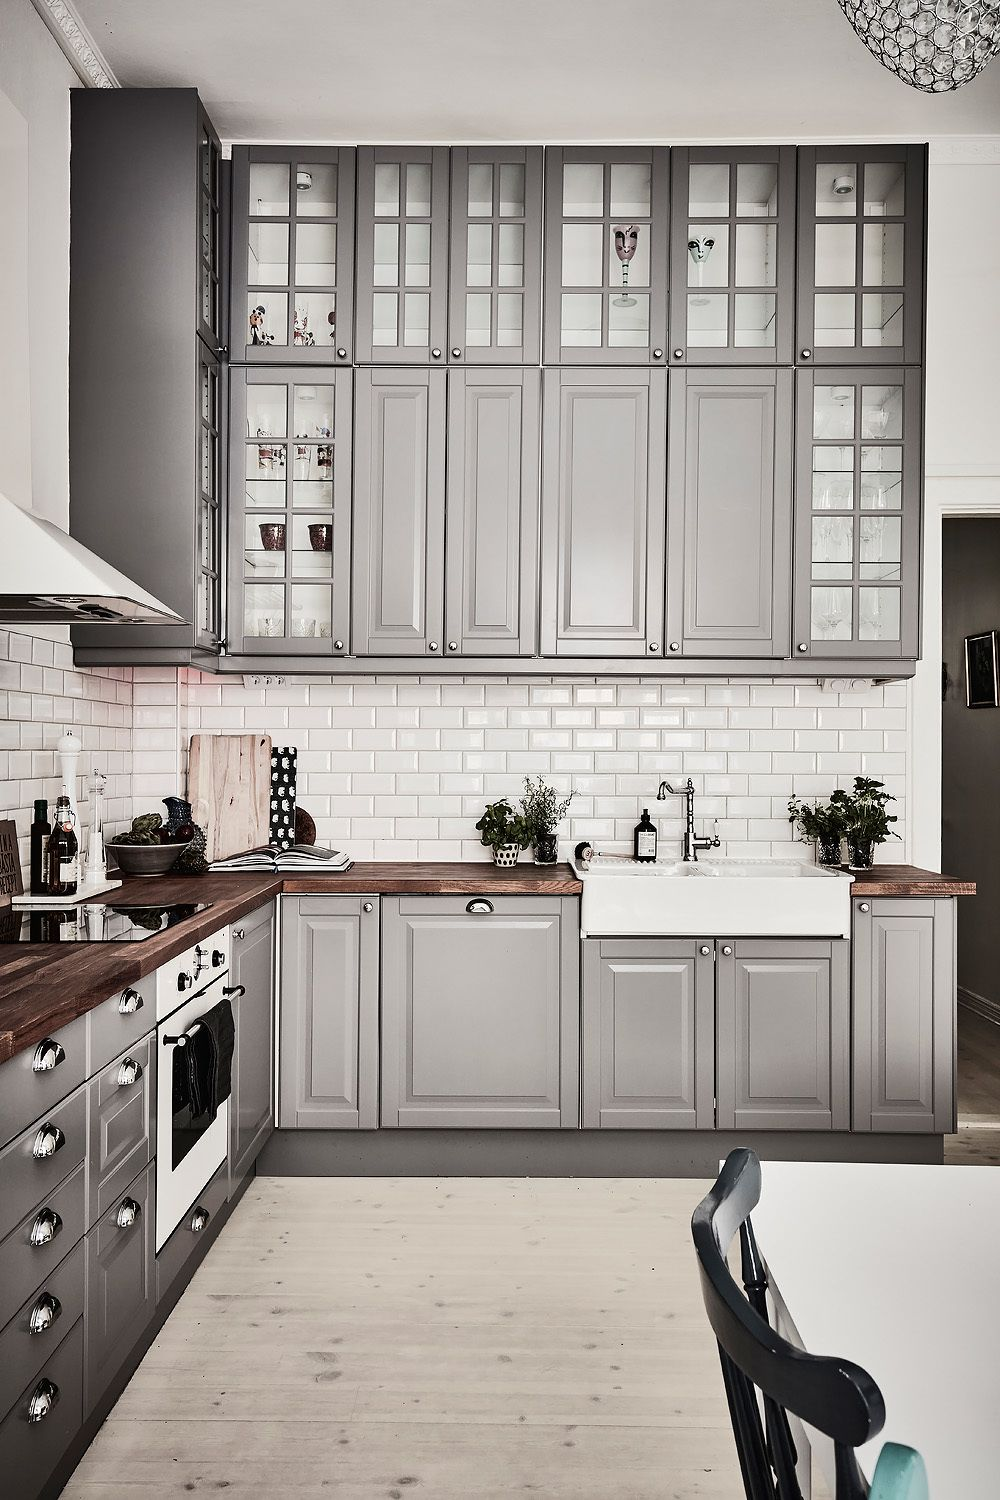 Inspiring Kitchens You Wont Believe Are IKEA Decorating Tips - Kitchen colors with light grey cabinets